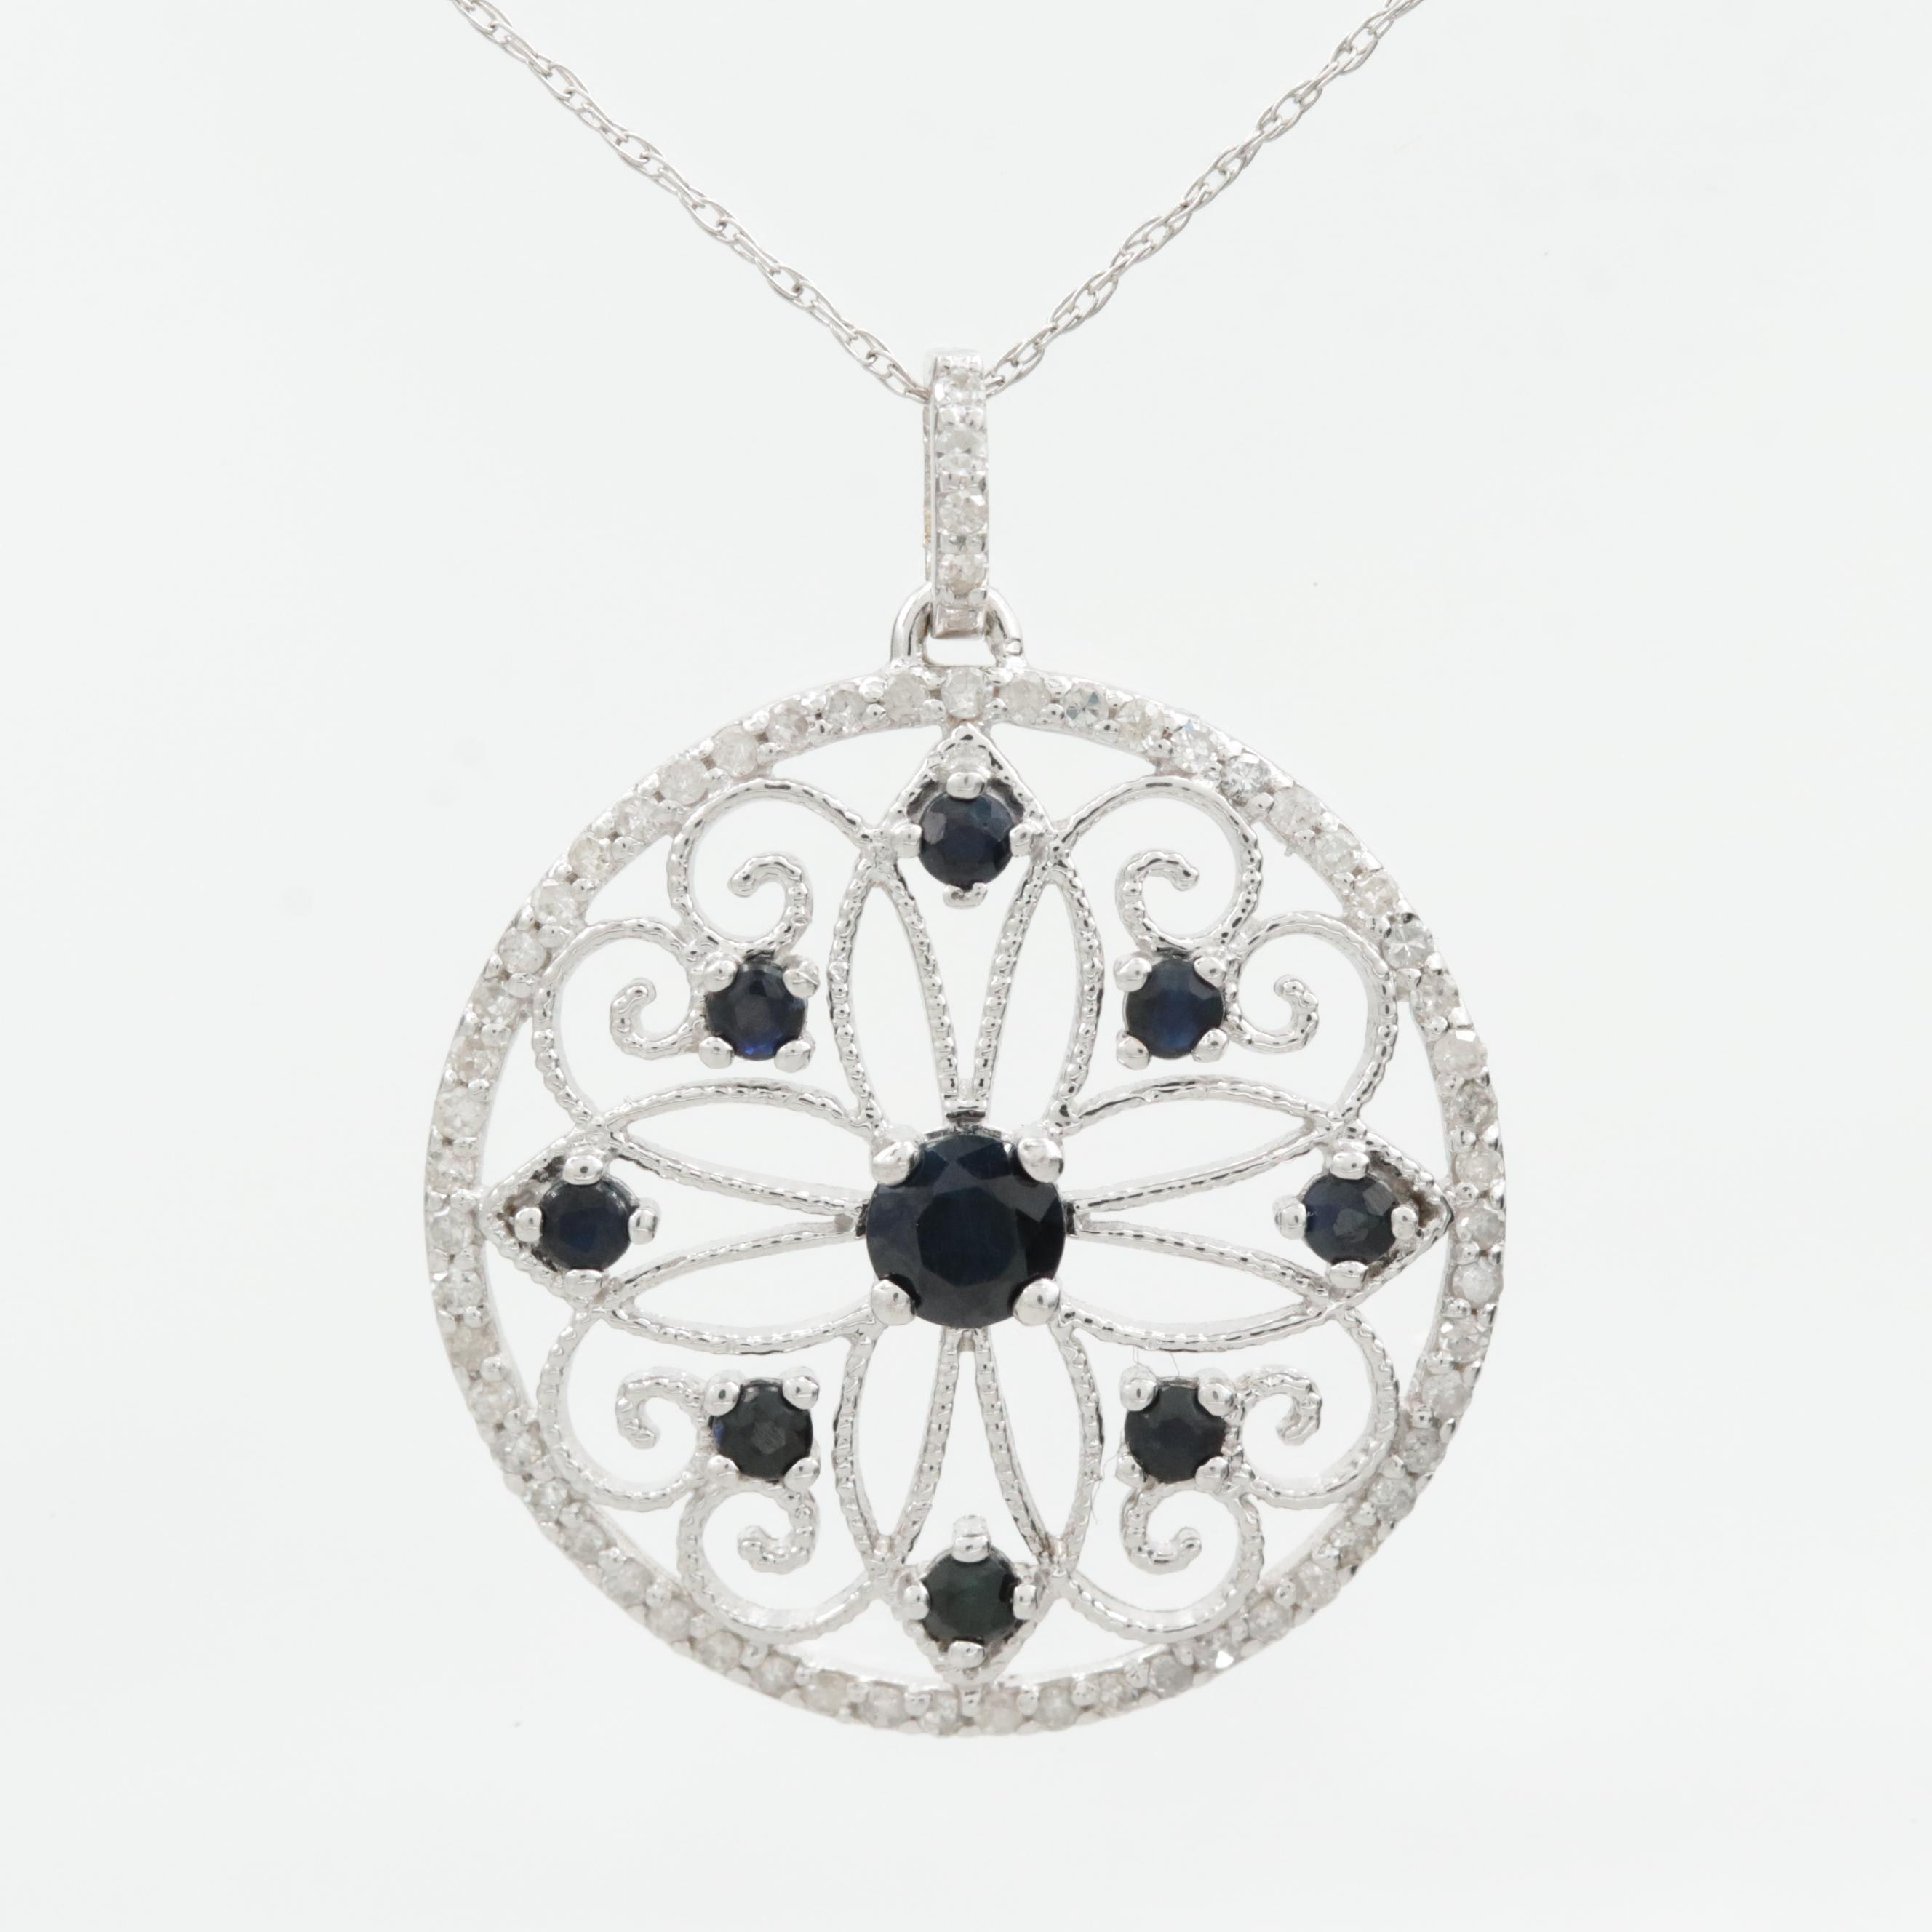 10K White Gold Blue Sapphire and Diamond Floral Necklace